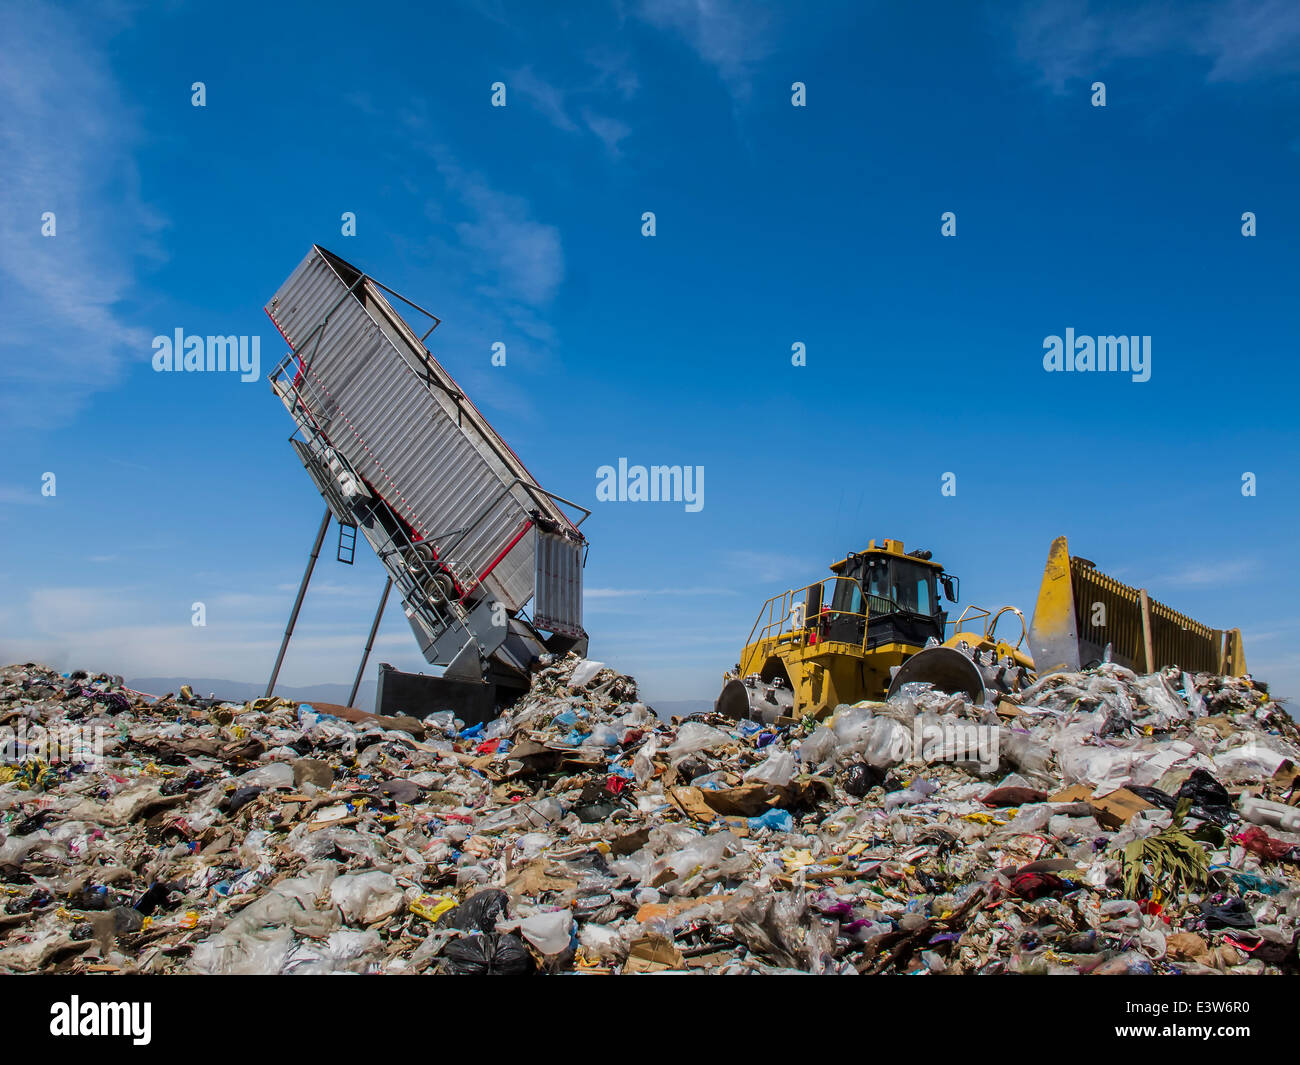 Modern hydraulic disposer empties a complete trailer, while bulldozer manages landfill. - Stock Image